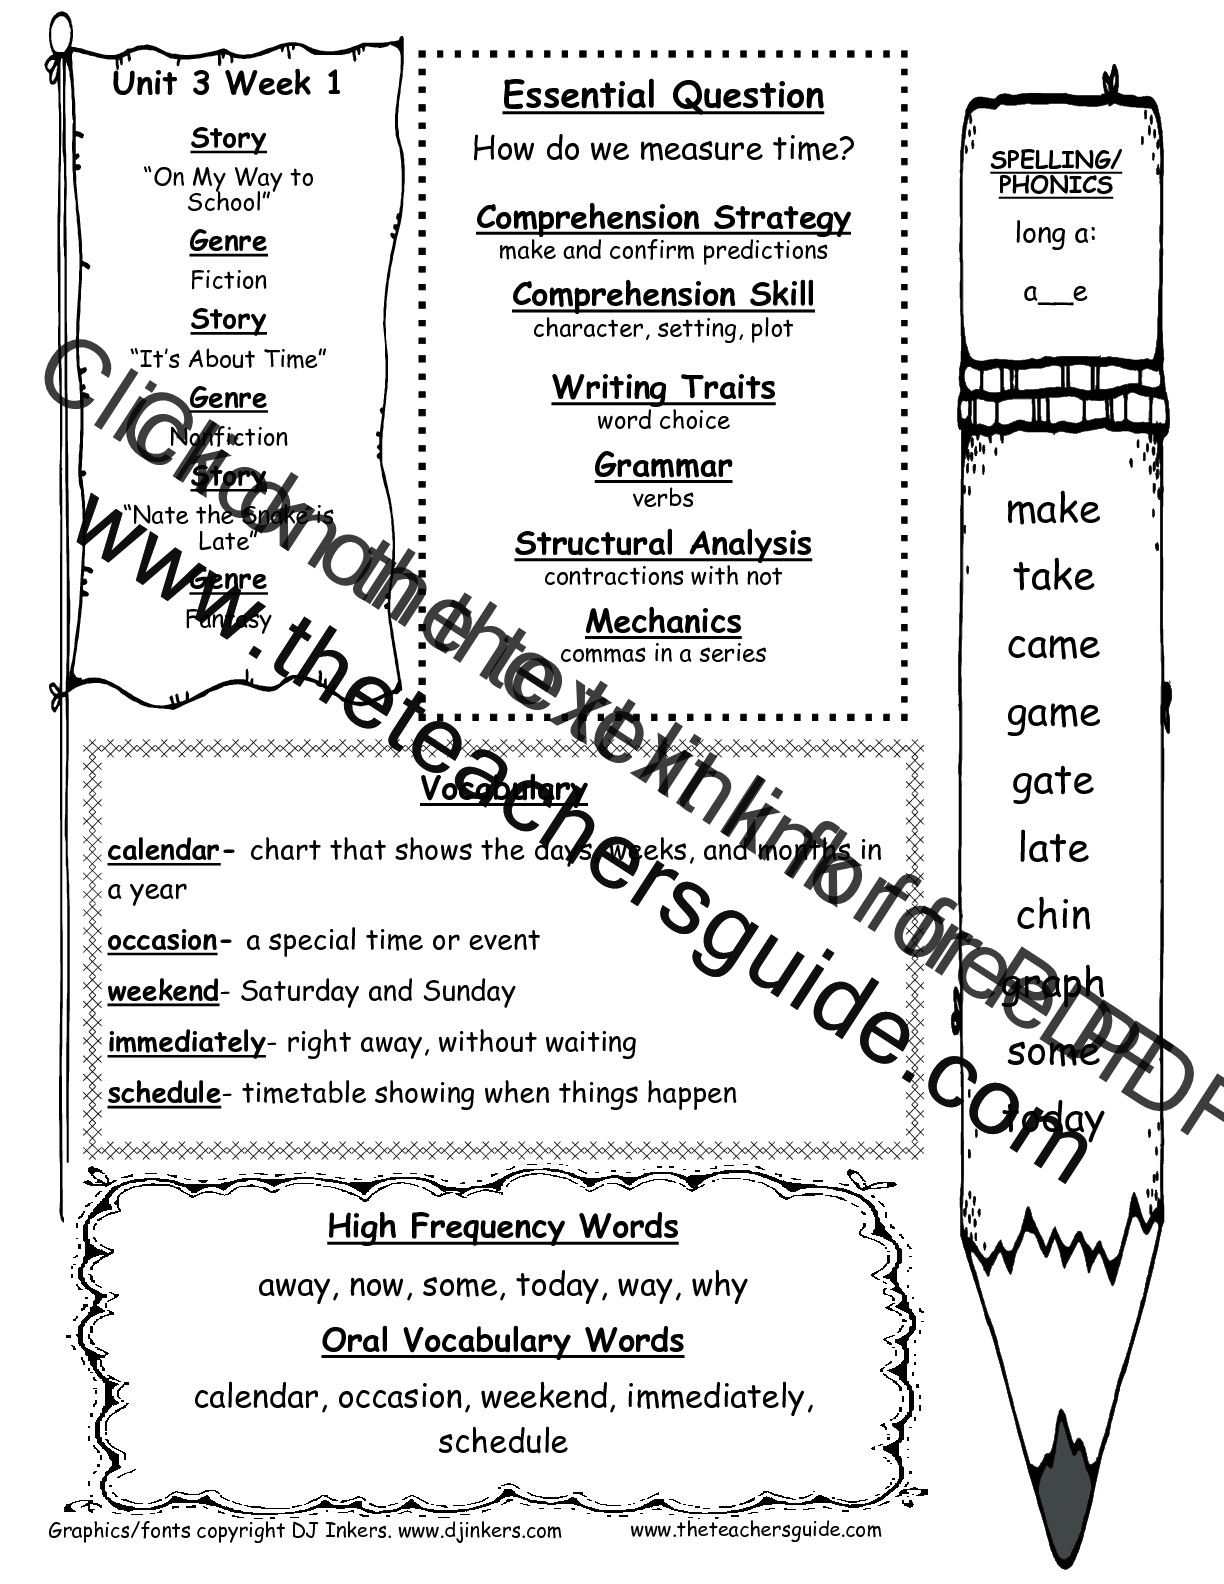 Worksheet Reading For First Grade mcgraw hill wonders first grade resources and printouts unit three week one weekly outline